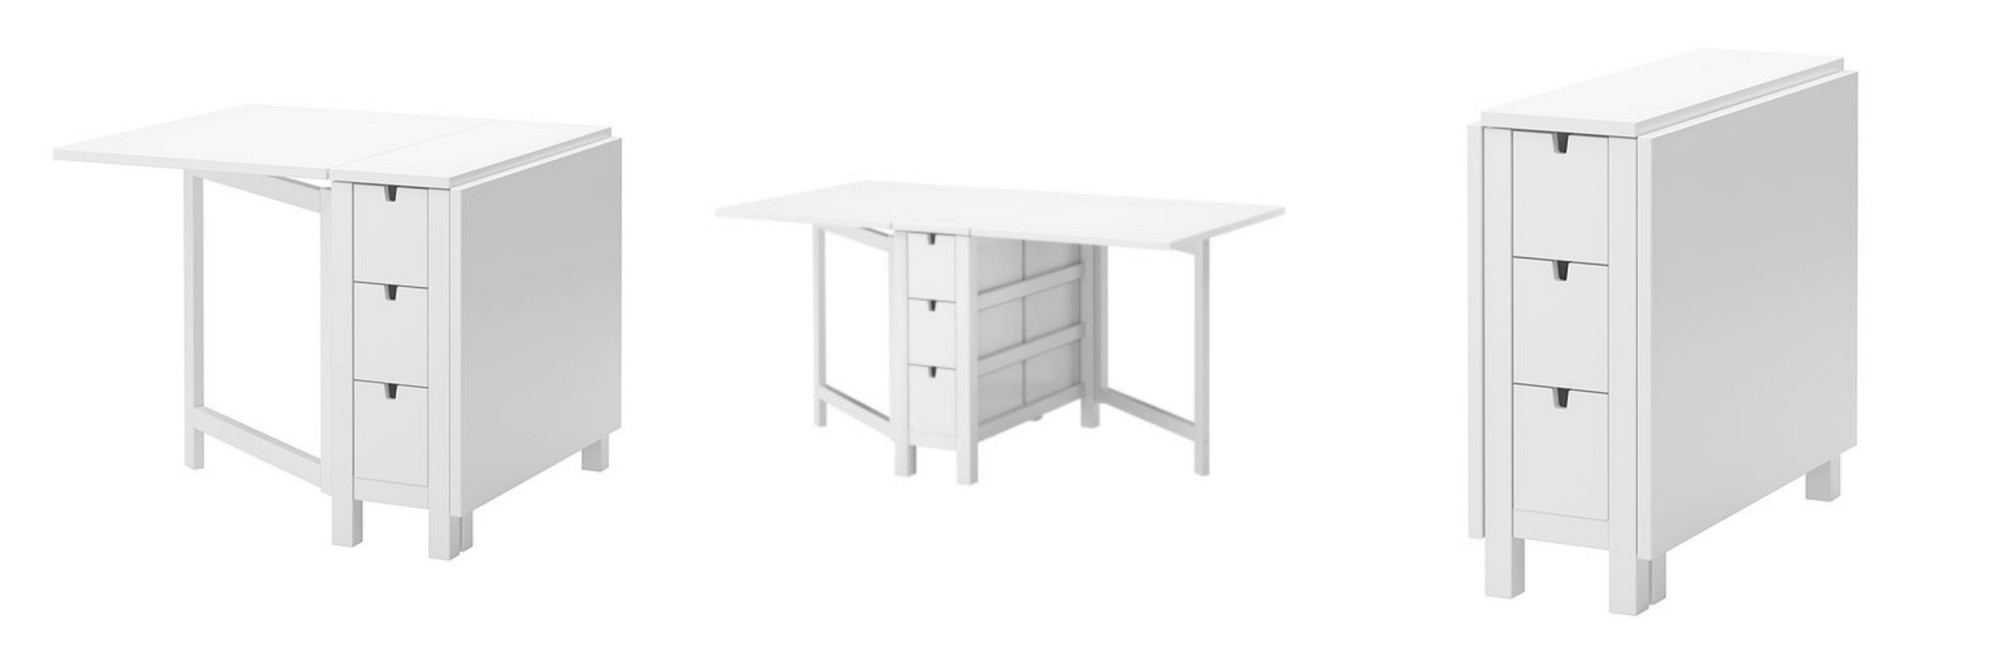 Decor Look Alikes | Ikea Norden Gateleg Table